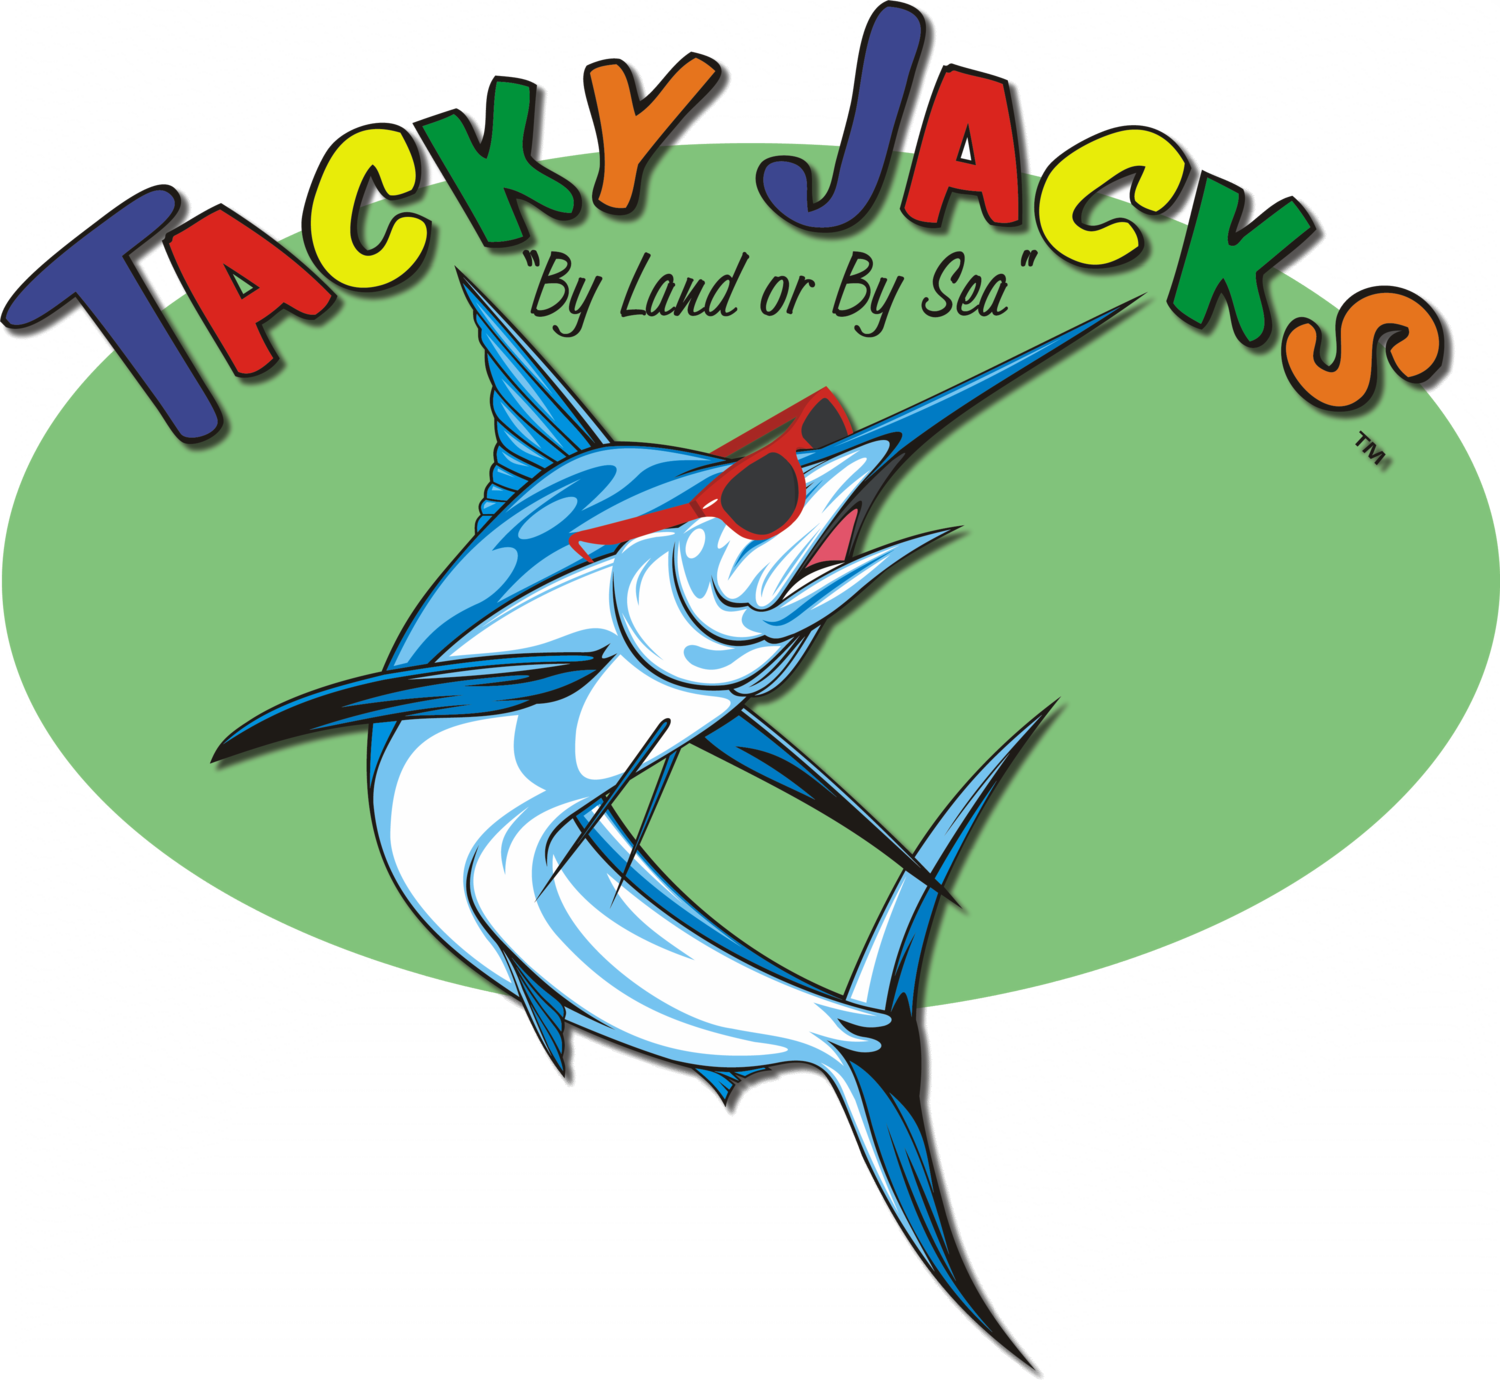 Tacky Tacks - By Land or By Sea